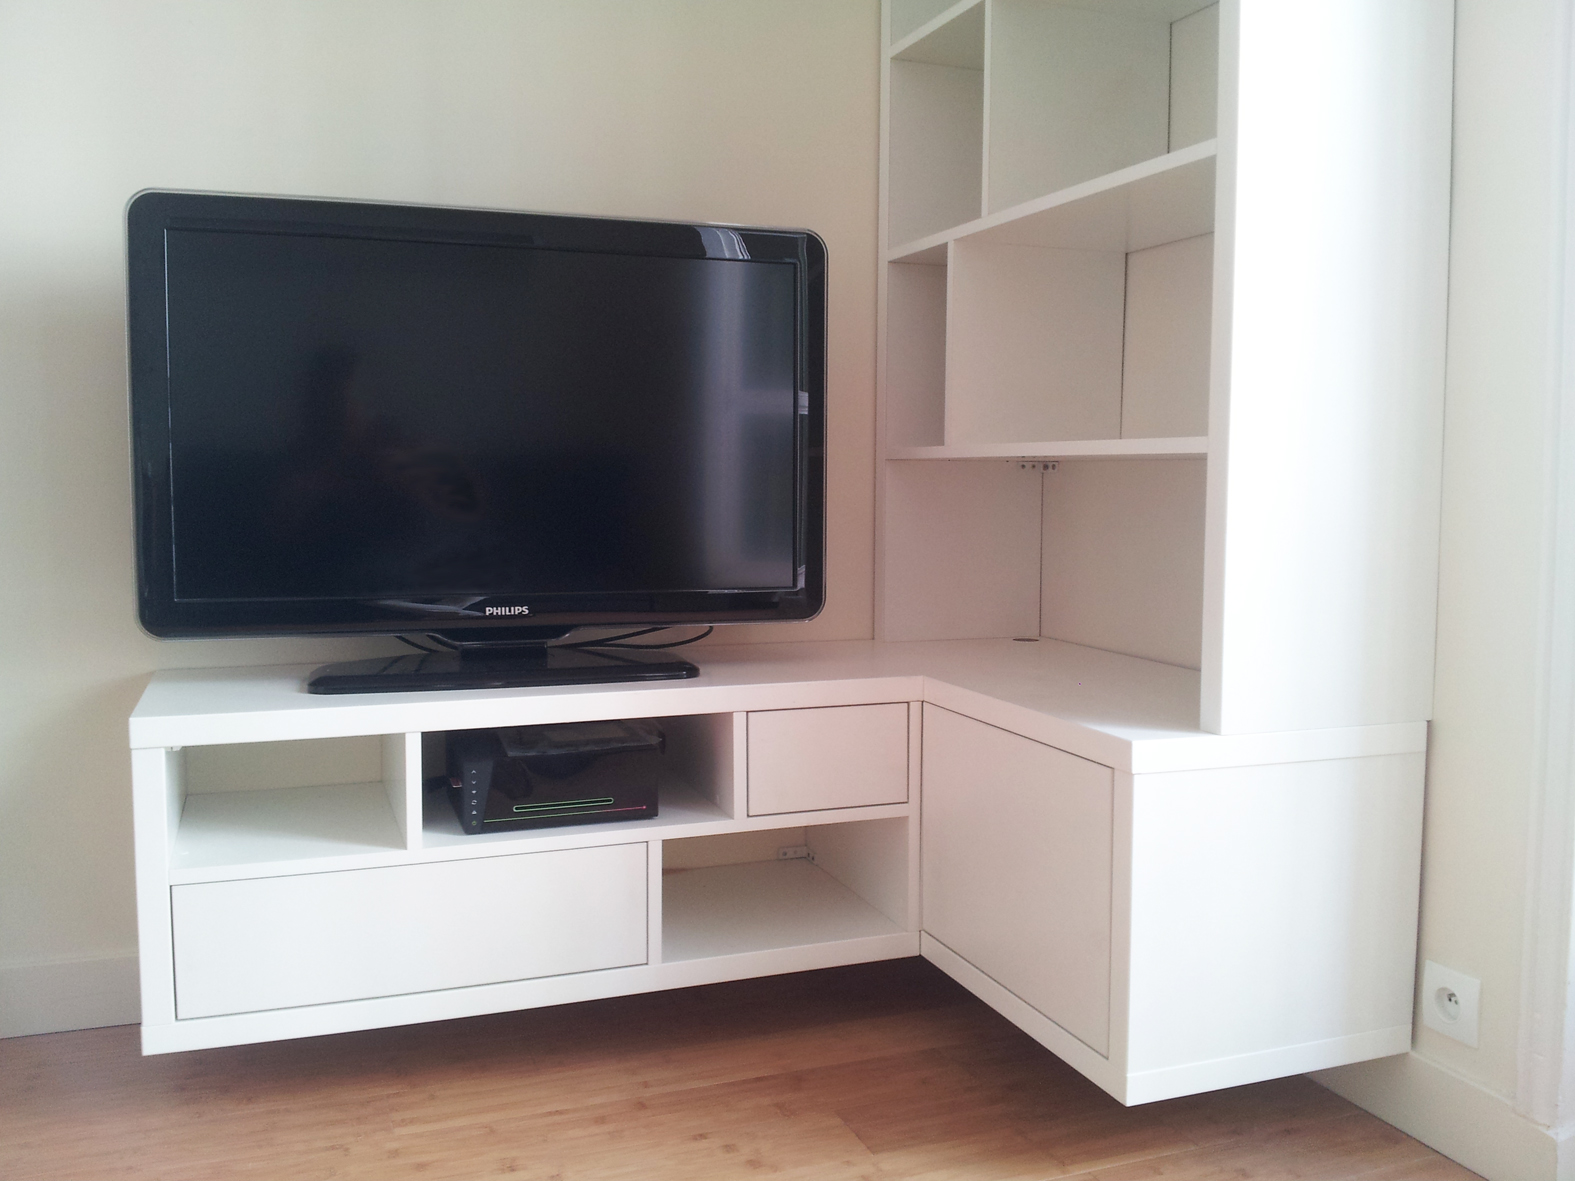 Meuble Tv Philips Trendy Philips Sts With Meuble Tv Philips  # Meuble Tv Philips